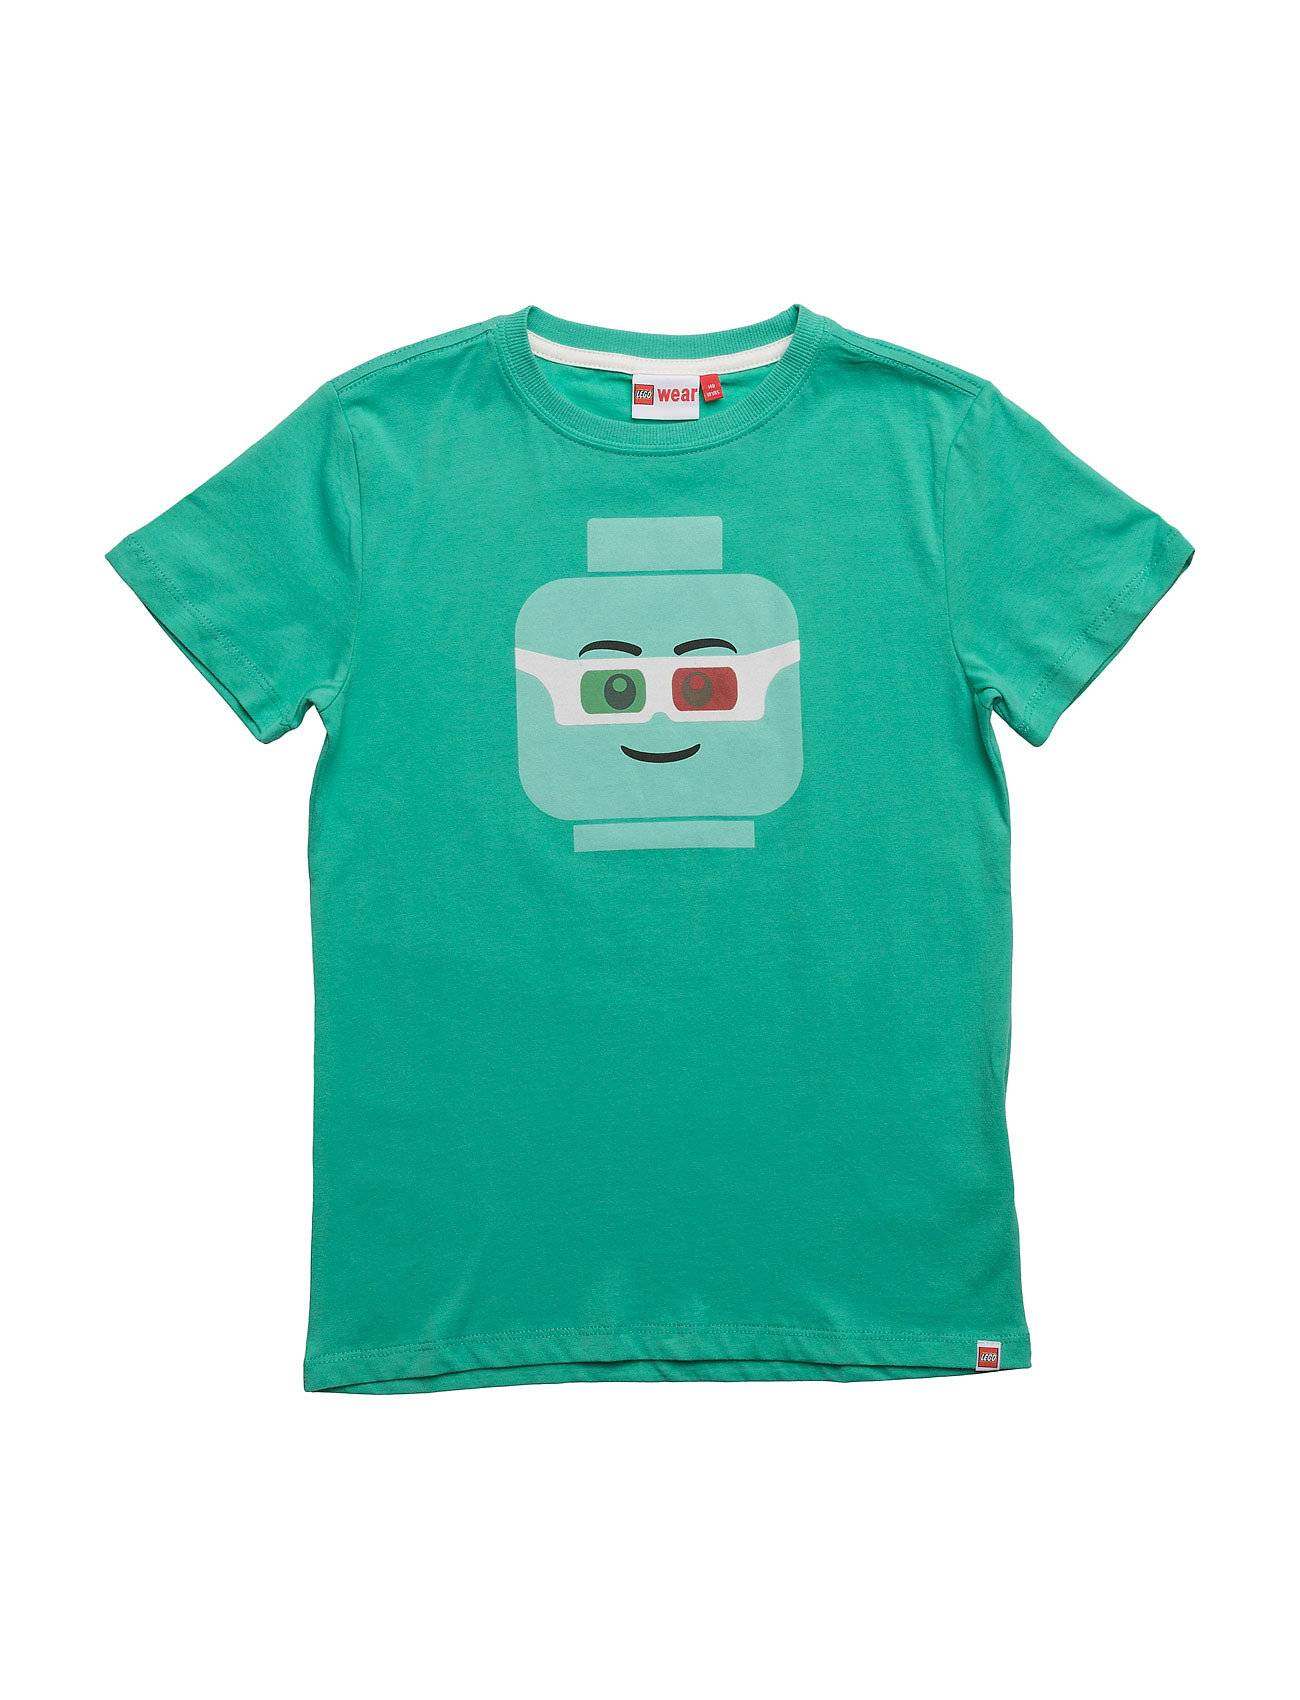 Lego Teo 504 - T-Shirt S/S